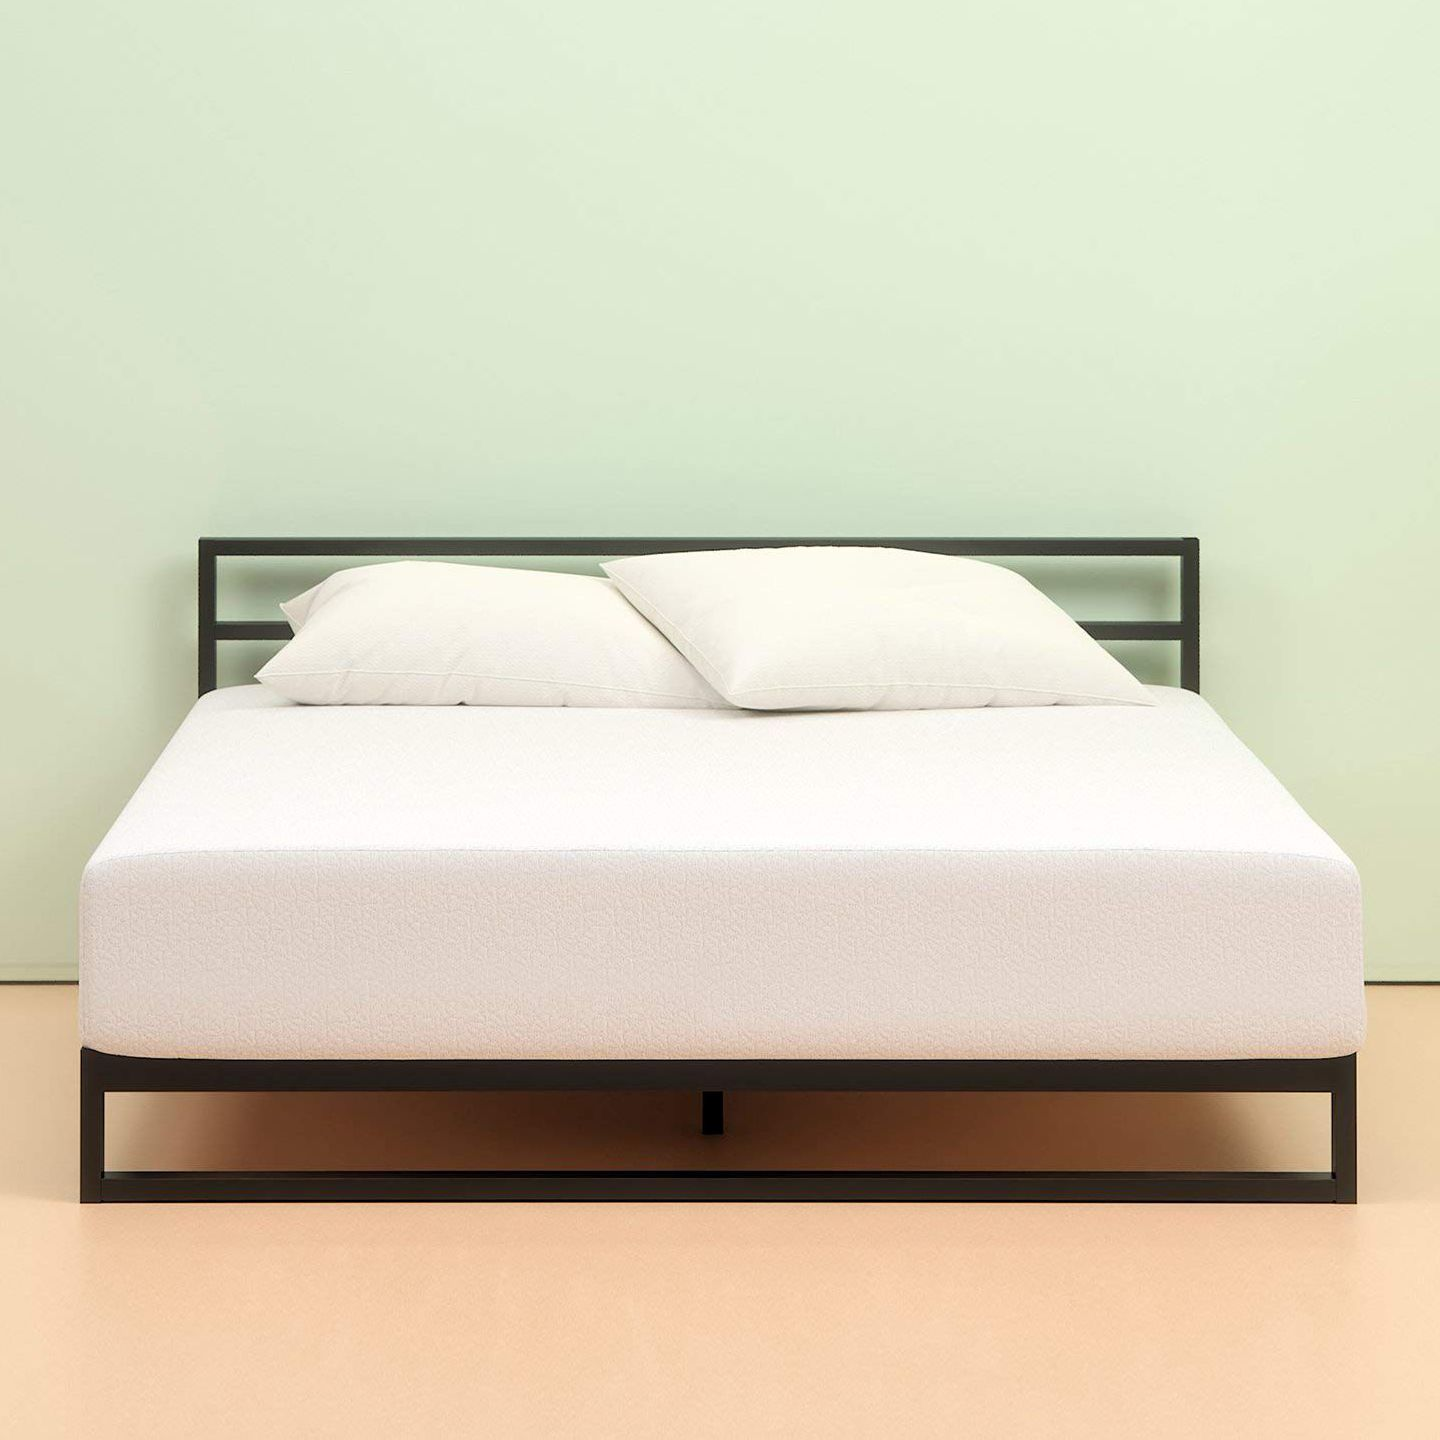 This Super Affordable Amazon Bestselling Memory Foam Mattress Is